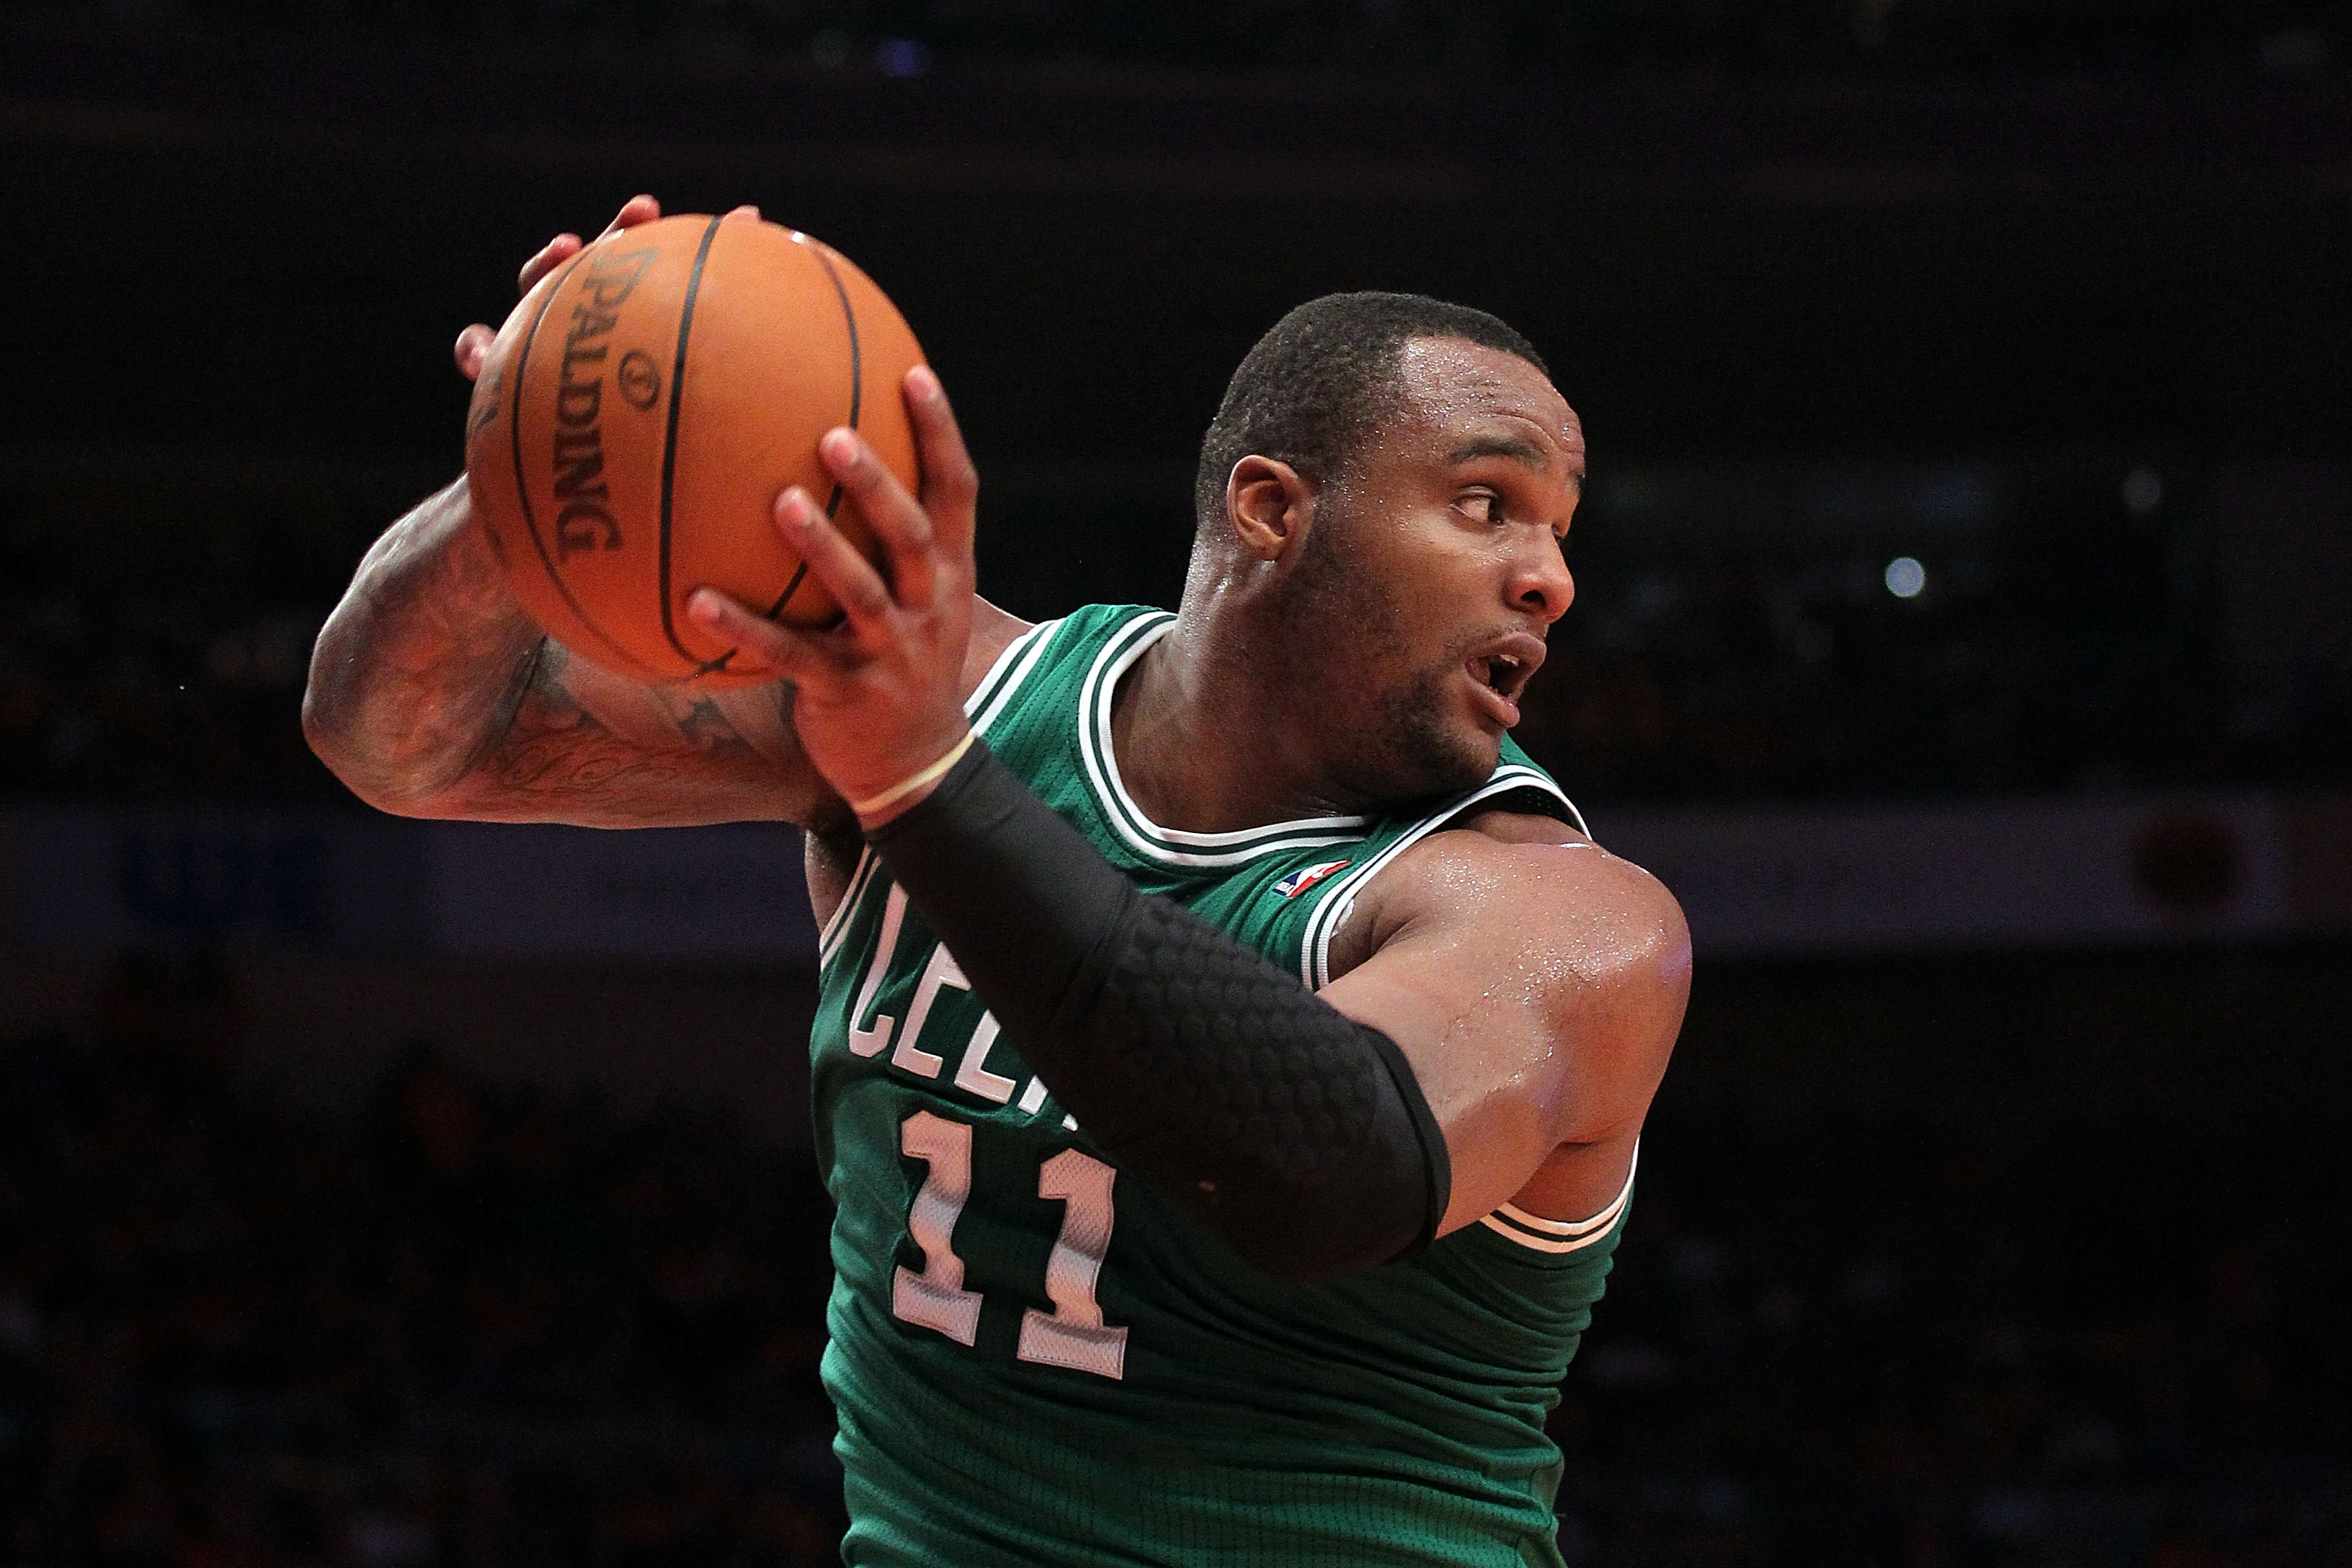 NEW YORK, NY - APRIL 24:  Glen Davis #11 of the Boston Celtics controls a rebound against the New York Knicks in Game Four of the Eastern Conference Quarterfinals during the 2011 NBA Playoffs on April 24, 2011 at Madison Square Garden in New York City. Th